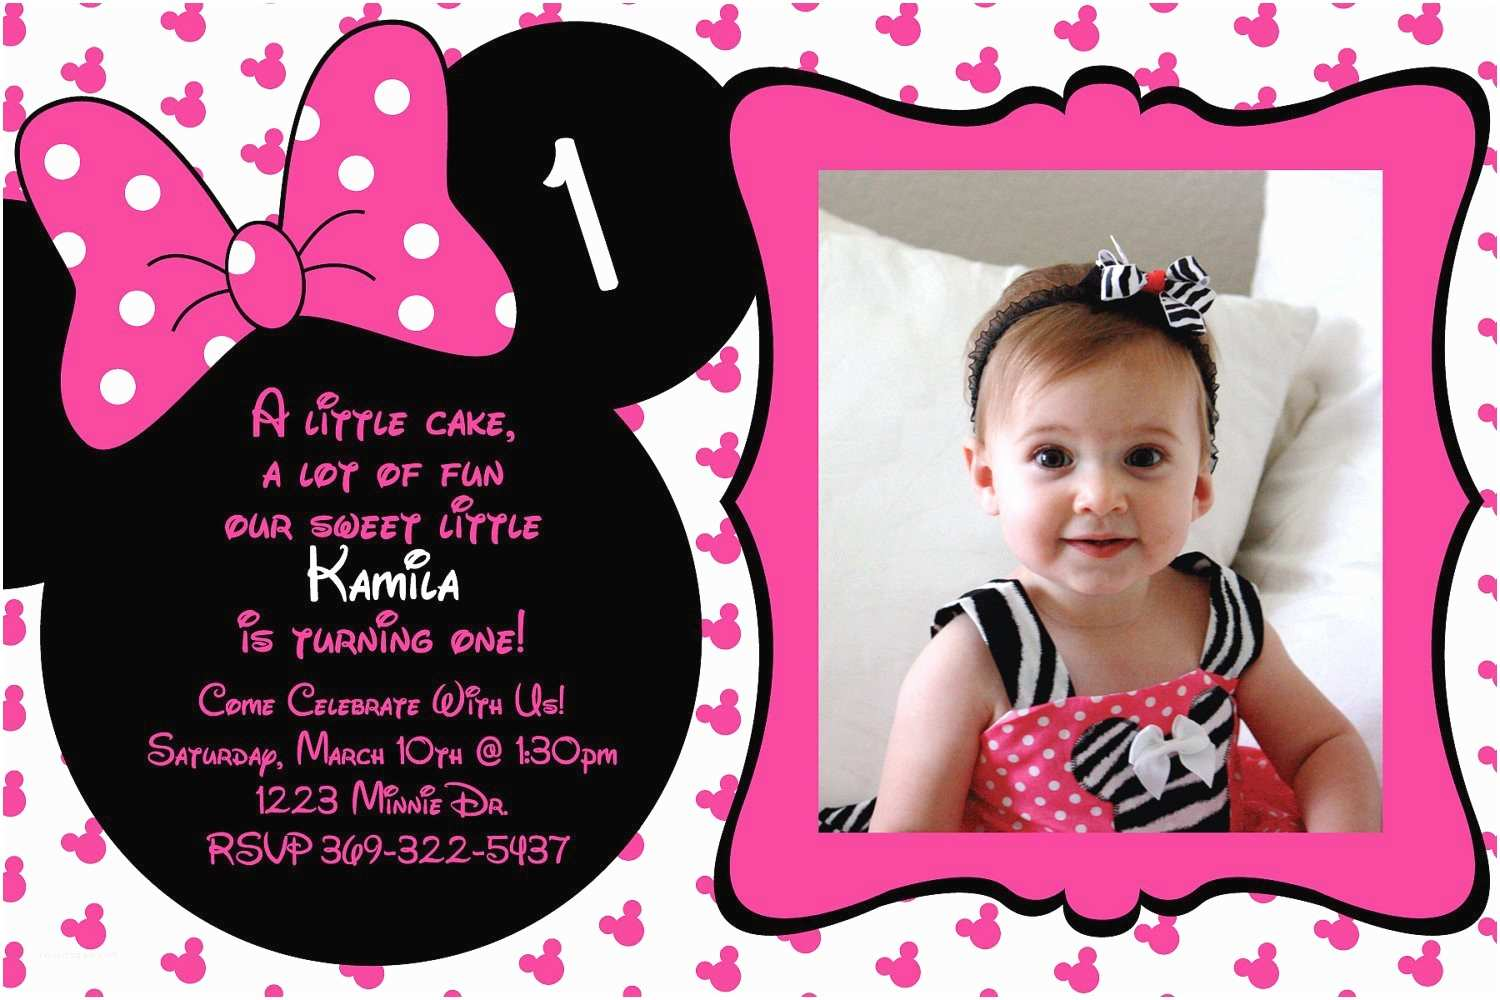 Minnie Mouse Birthday Invitations Personalized Minnie Mouse Birthday Invitations Minnie Mouse Birthday